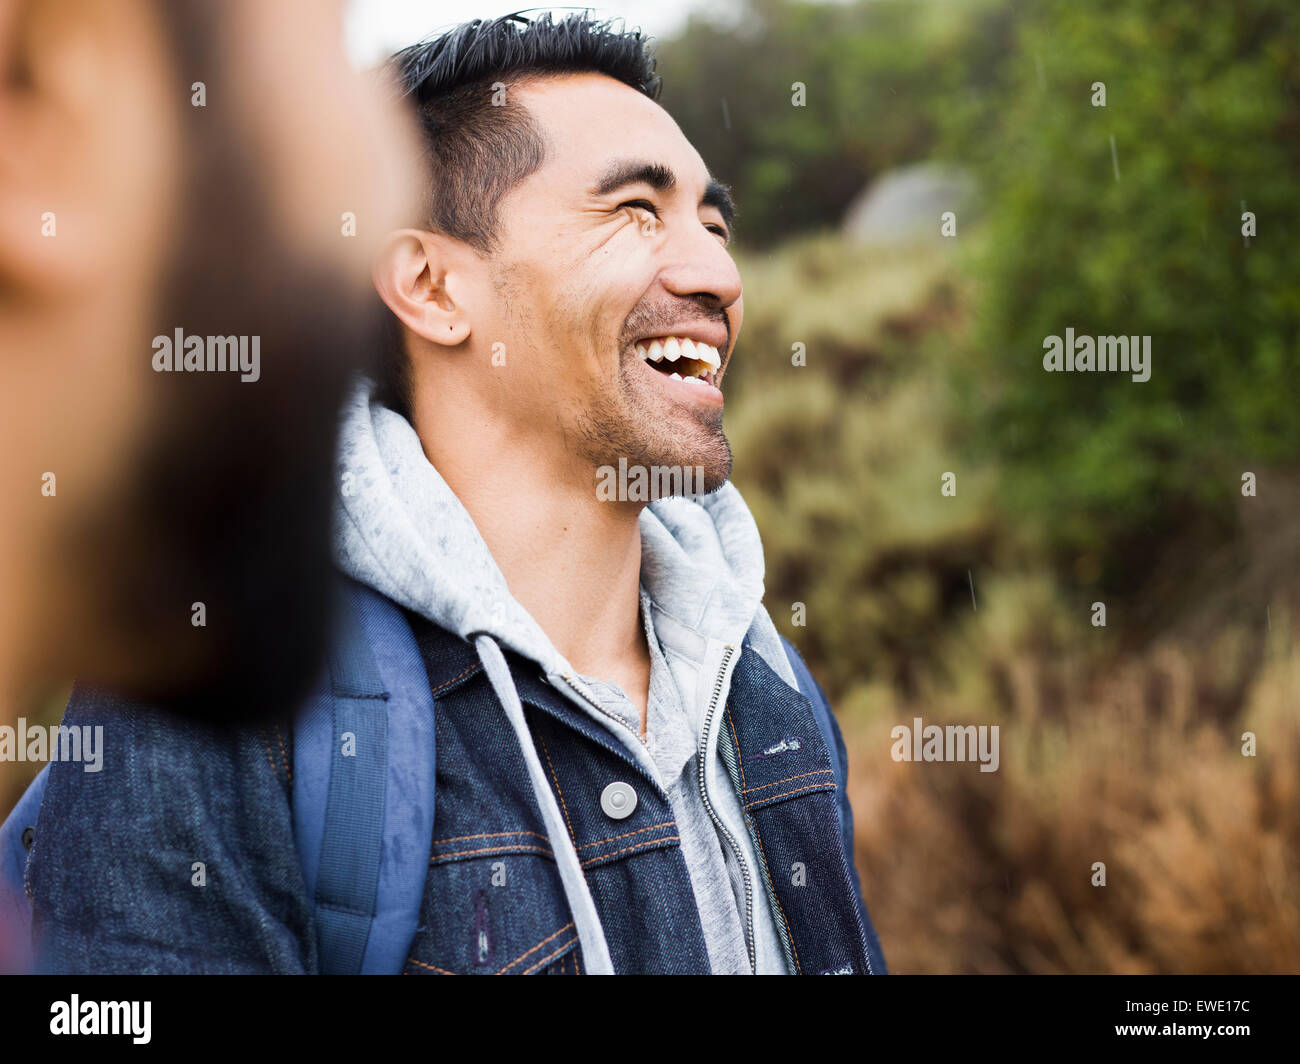 Two men, one laughing with his head back - Stock Image